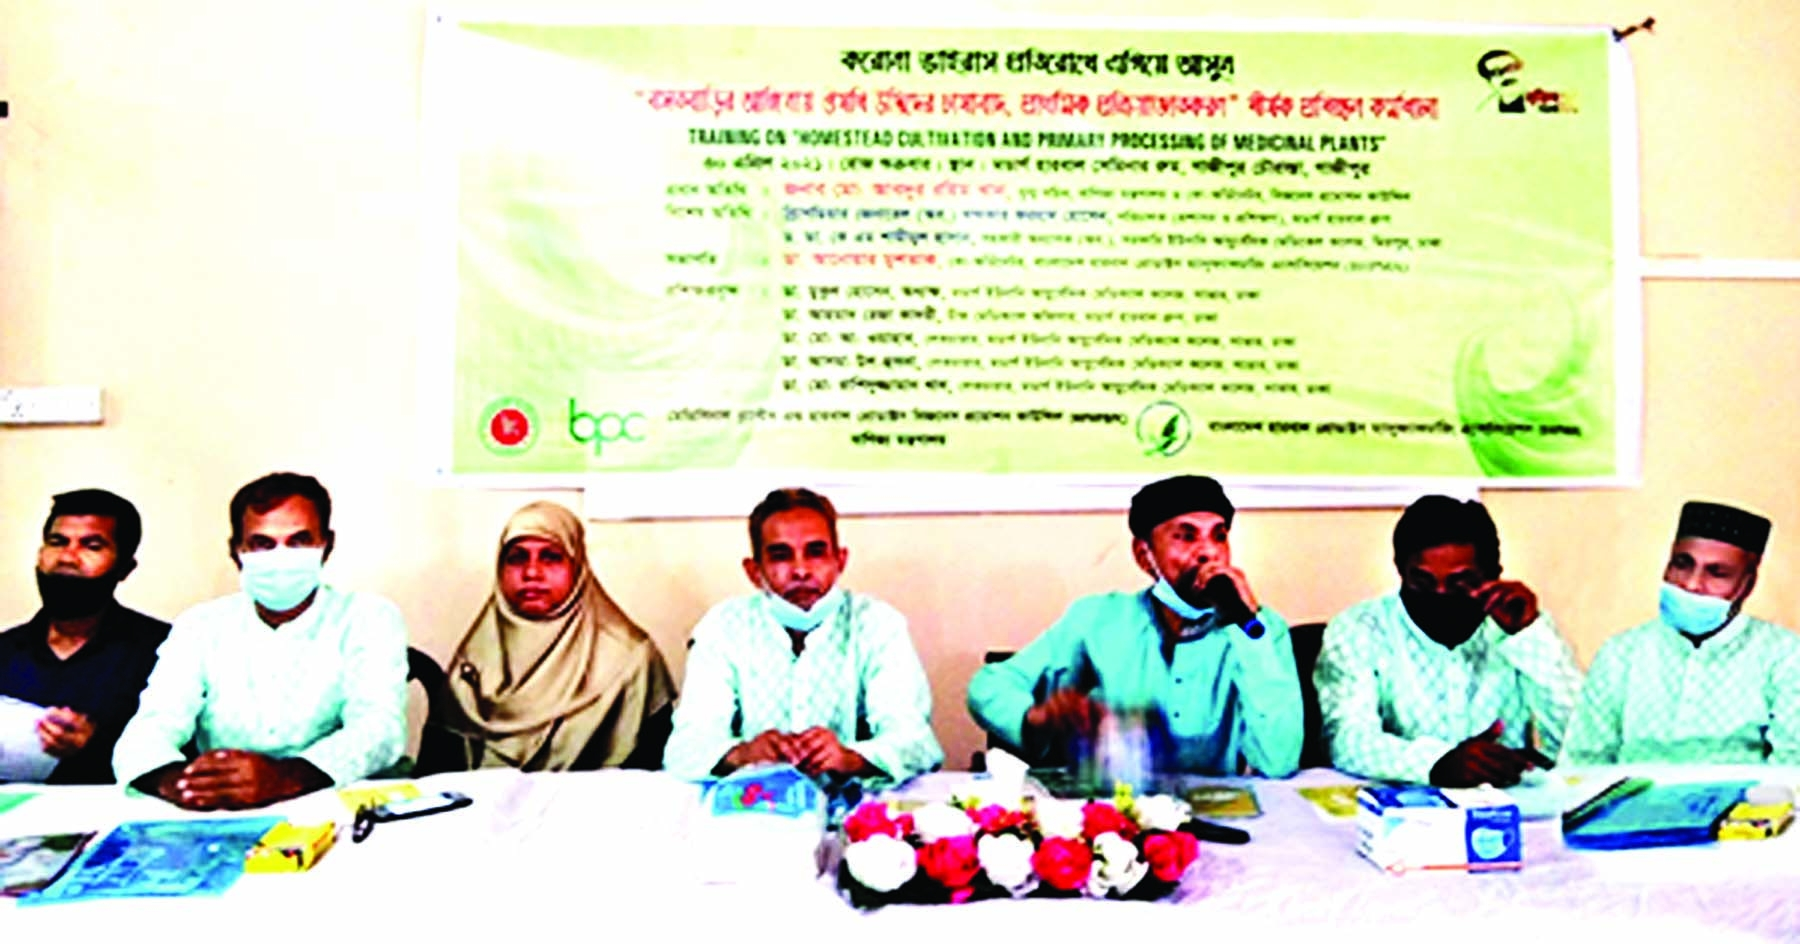 Md. Abdur Rahim Khan, Additional Secretary of Commerce Ministry speaks at a day-long training programme titled 'Homestead Cultivation and Primary Processing of Medicinal Plants' held at Gazipur recently the programme was jointly organized by Bangladesh Herbal Products Manufacturing Association and Herbal Products Business promotion council under commerce ministry.